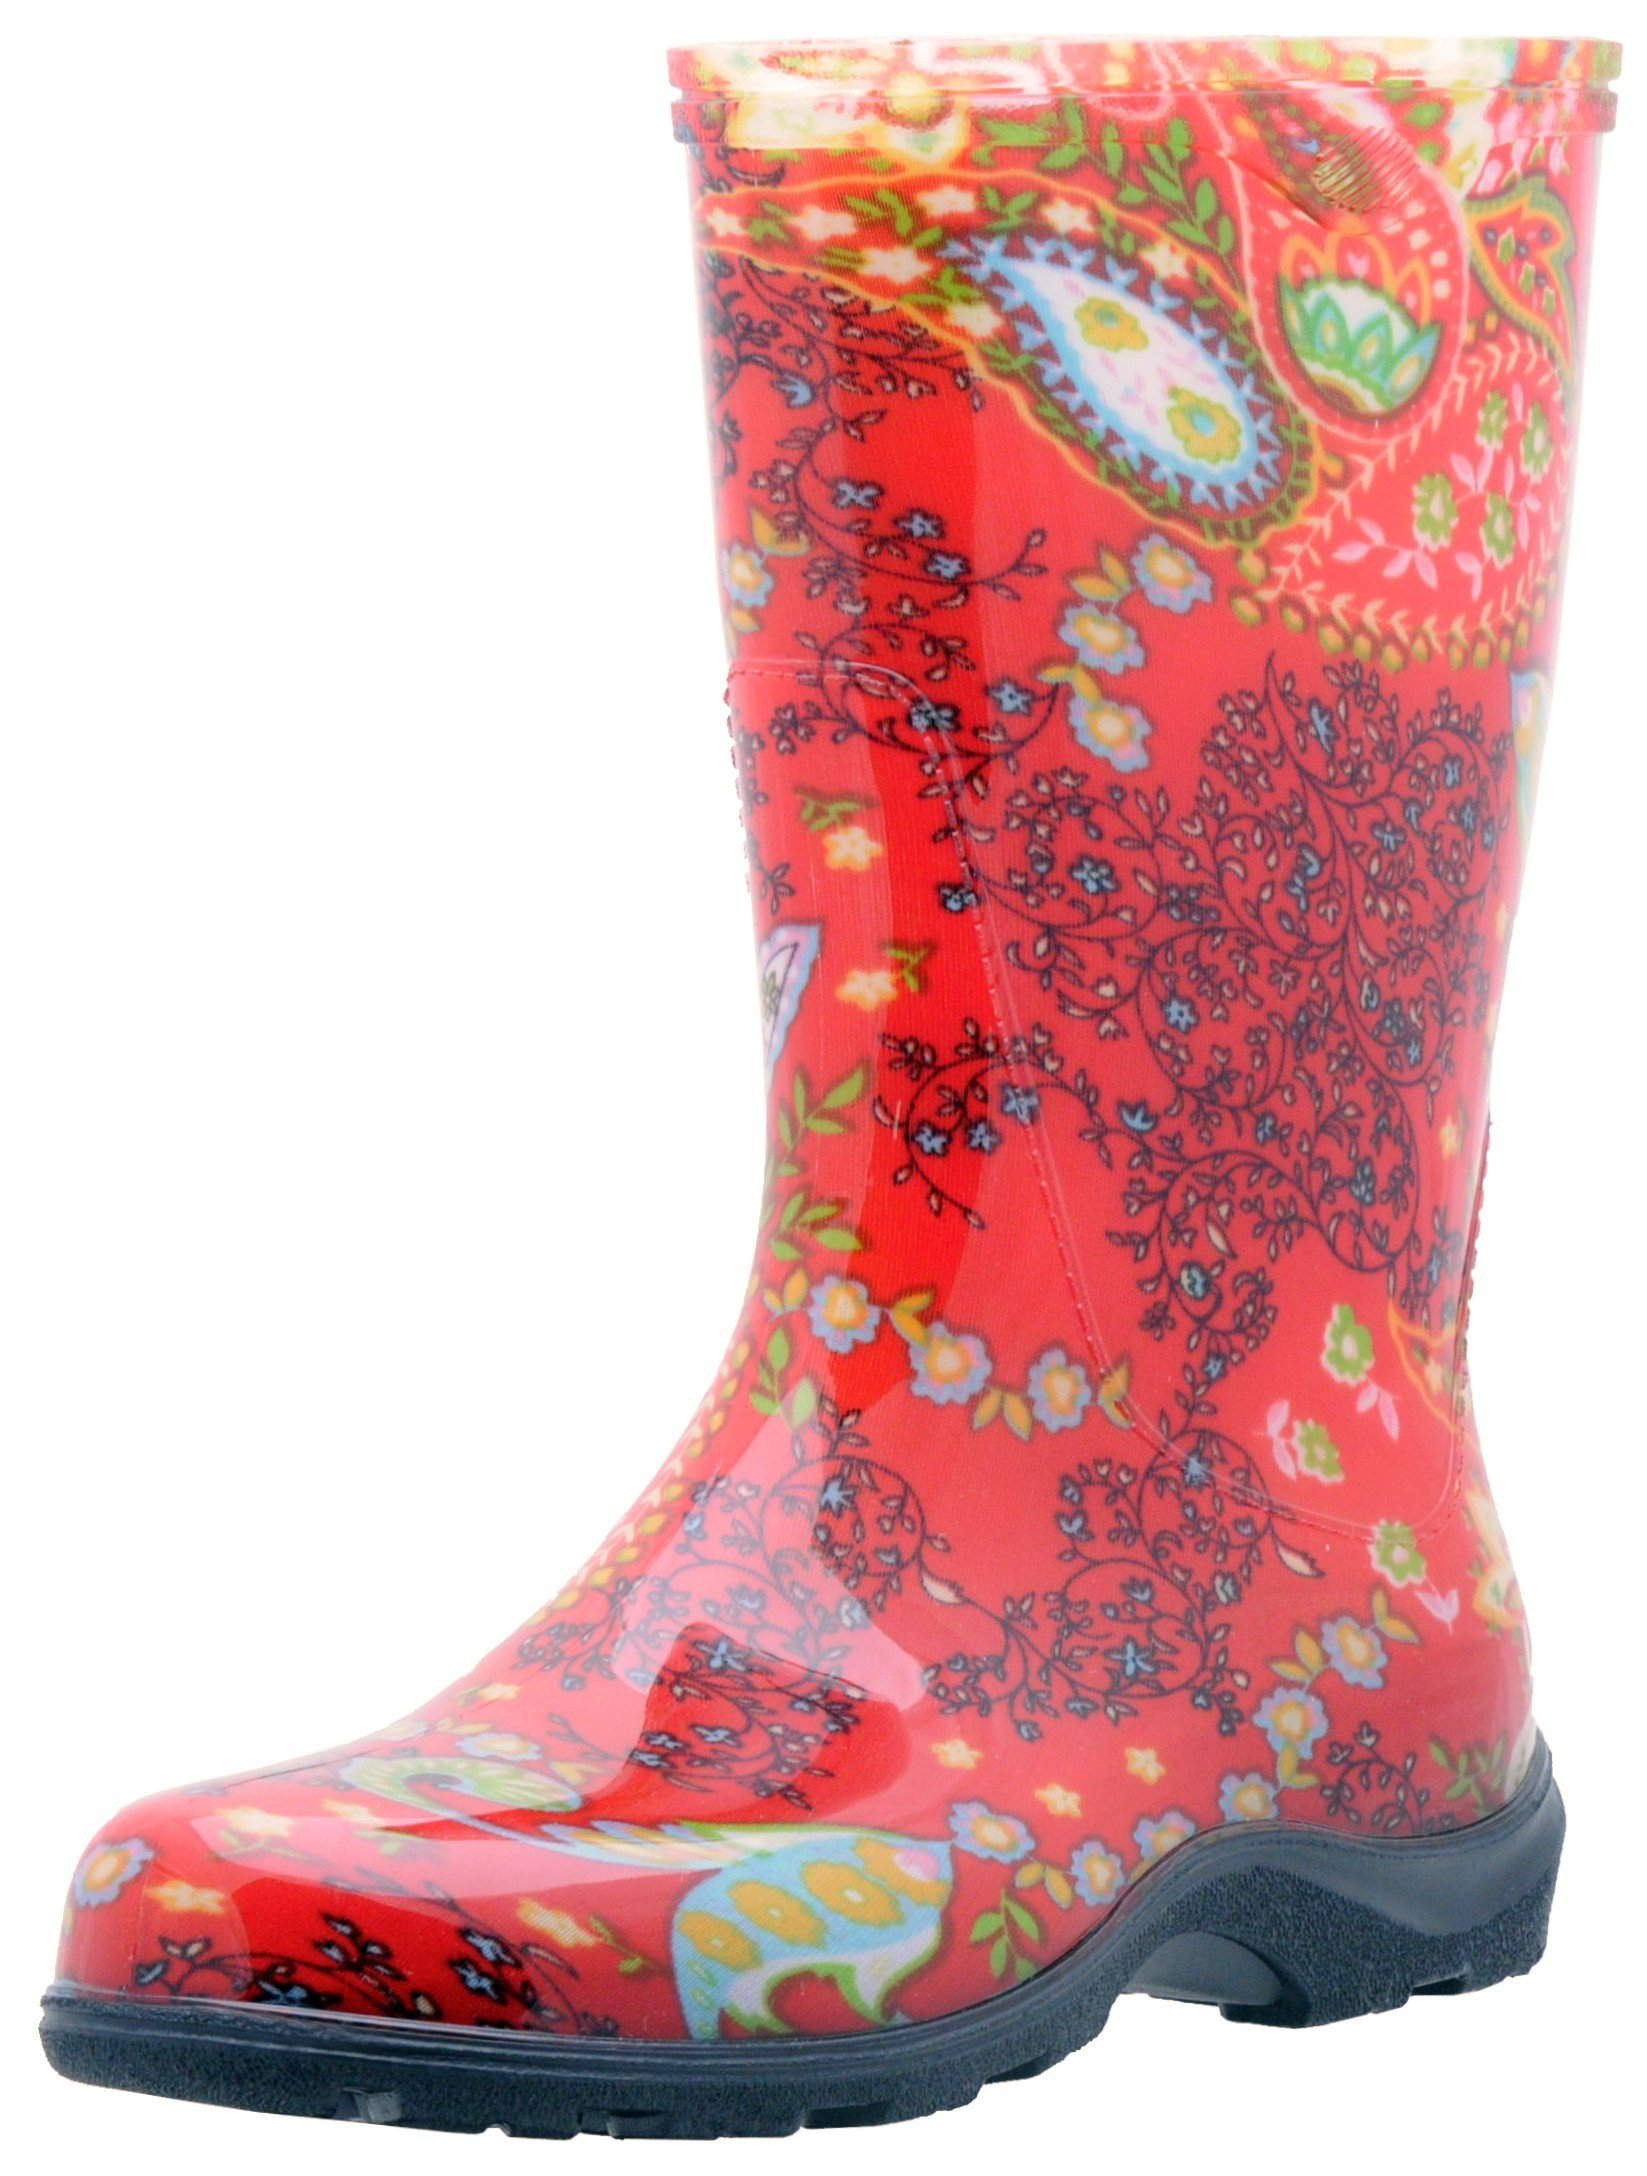 Sloggers  Women's Waterproof Rain and Garden Boot with Comfort Insole, Paisley Red,  Size 8, Style 5004RD08